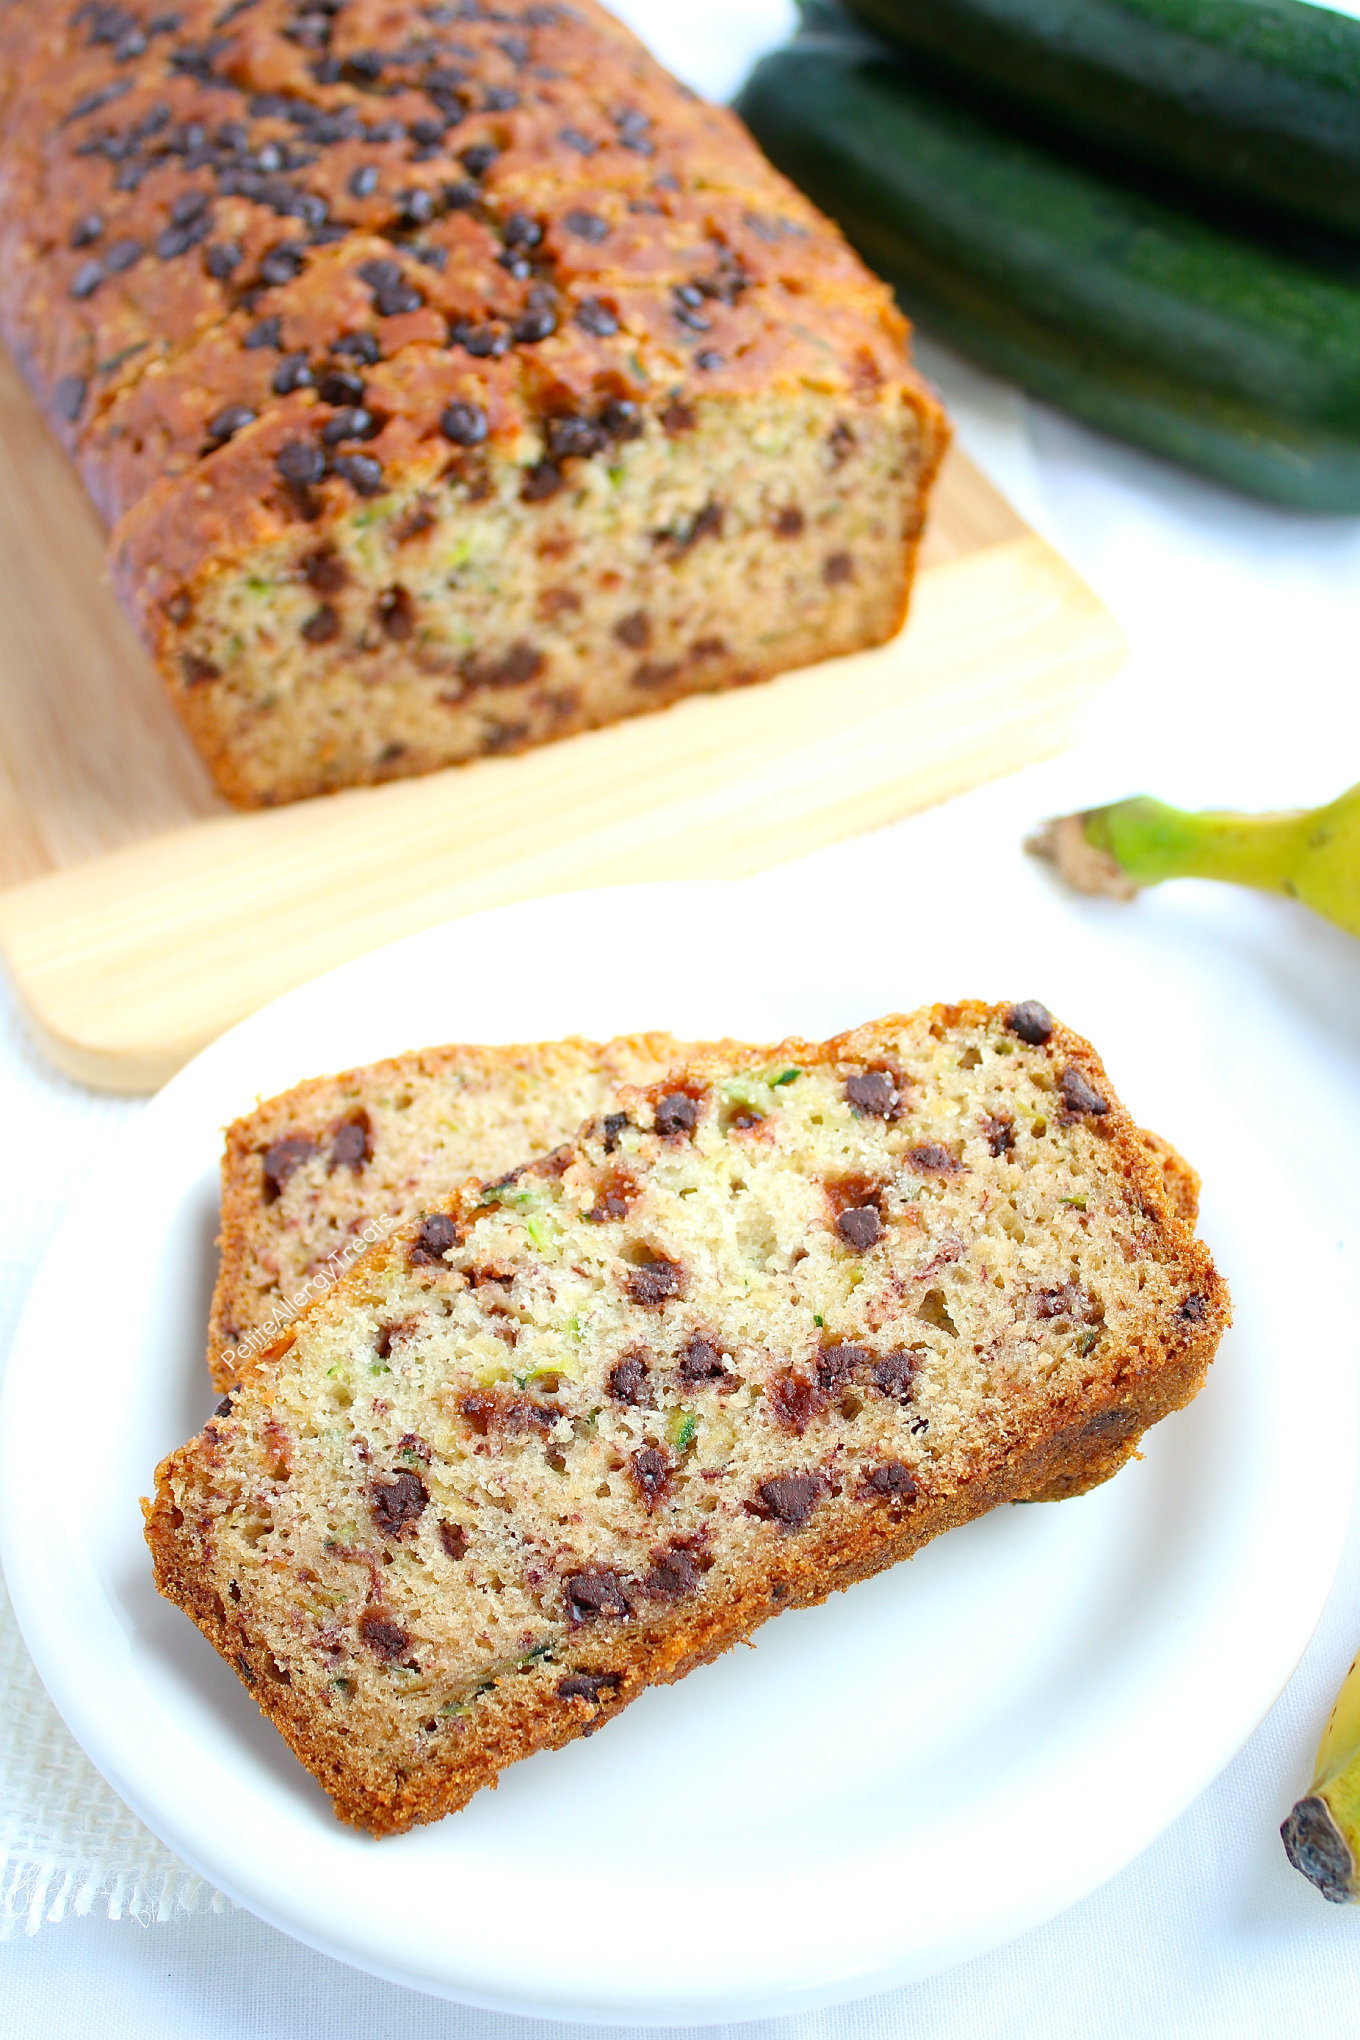 Gluten Free Chocolate Chip Zucchini Bread Recipe (egg free dairy free Vegan)- Easy one bowl gluten free chocolate chip zucchini bread. #glutenfree, #dairyfree, #eggfree, #vegan